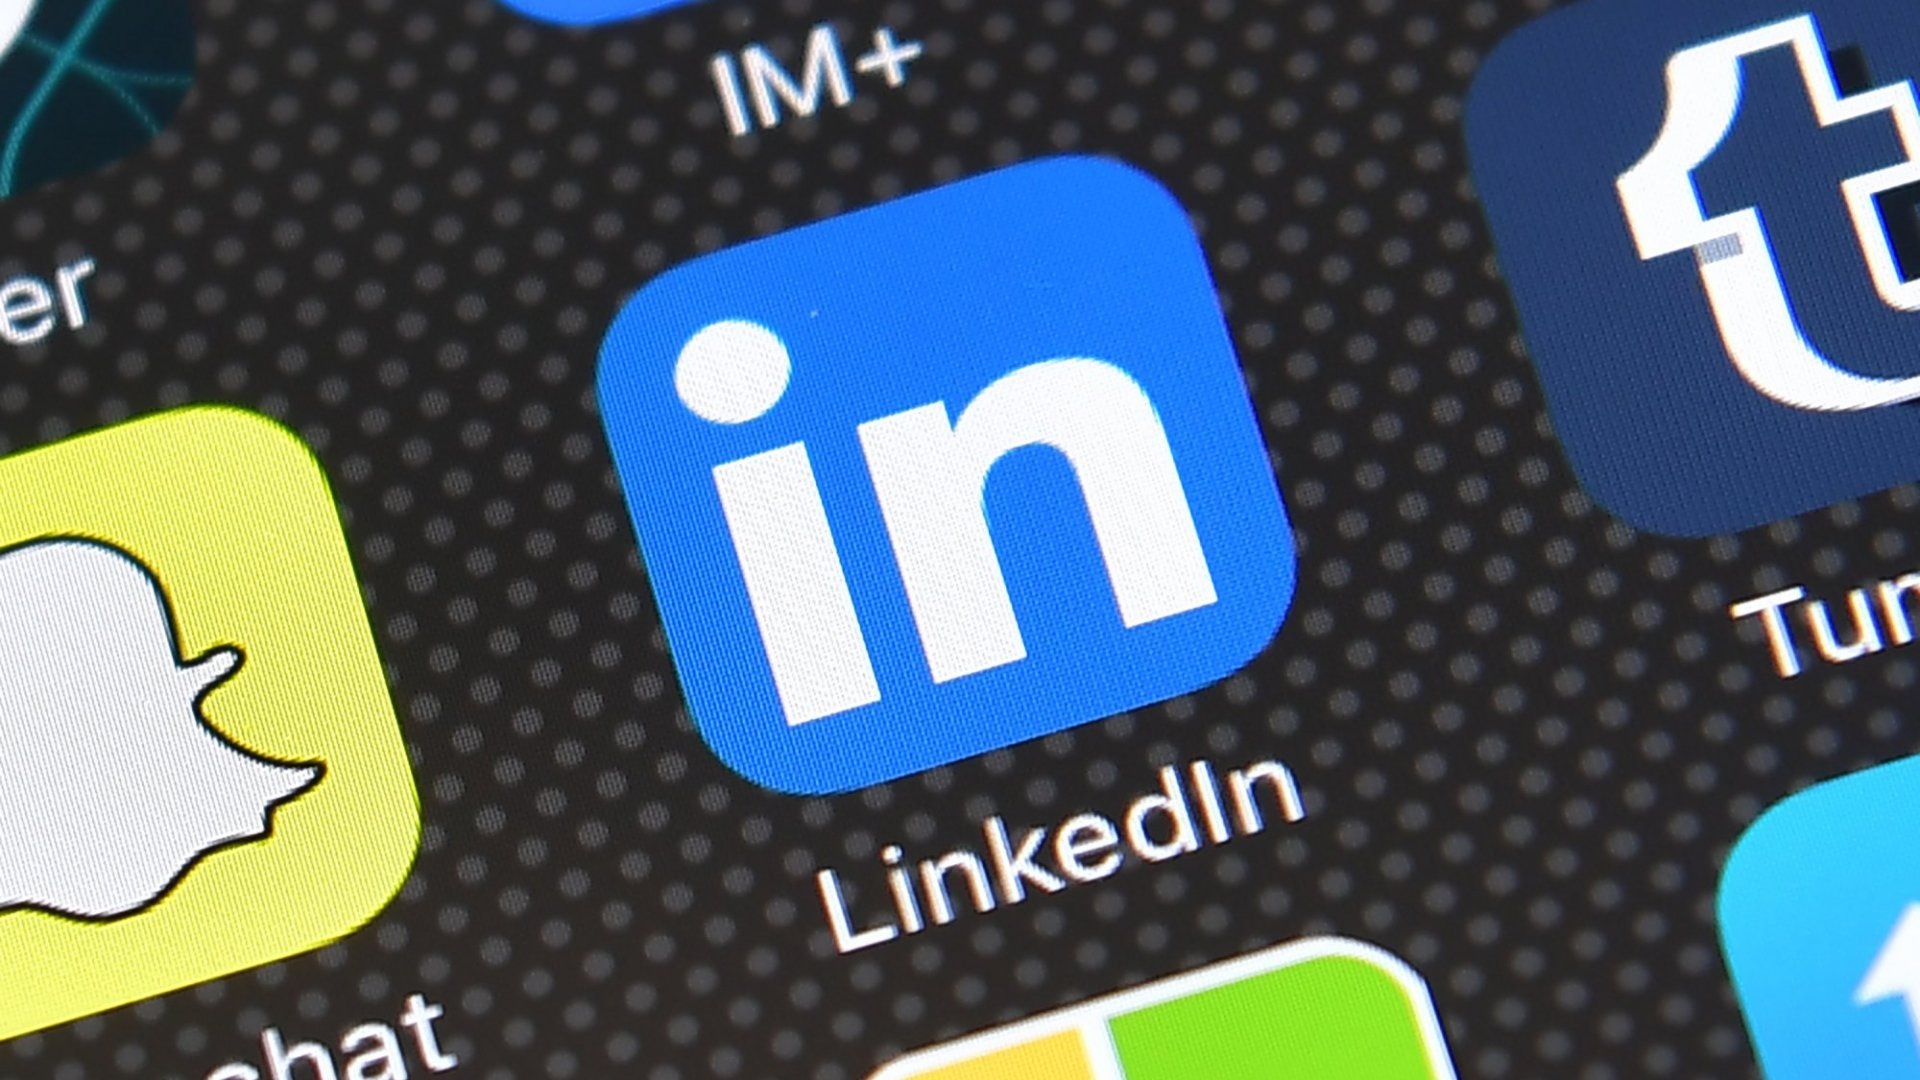 Make Sure to Do These 3 Things Before Sending a LinkedIn Request to Guarantee a Positive Connection